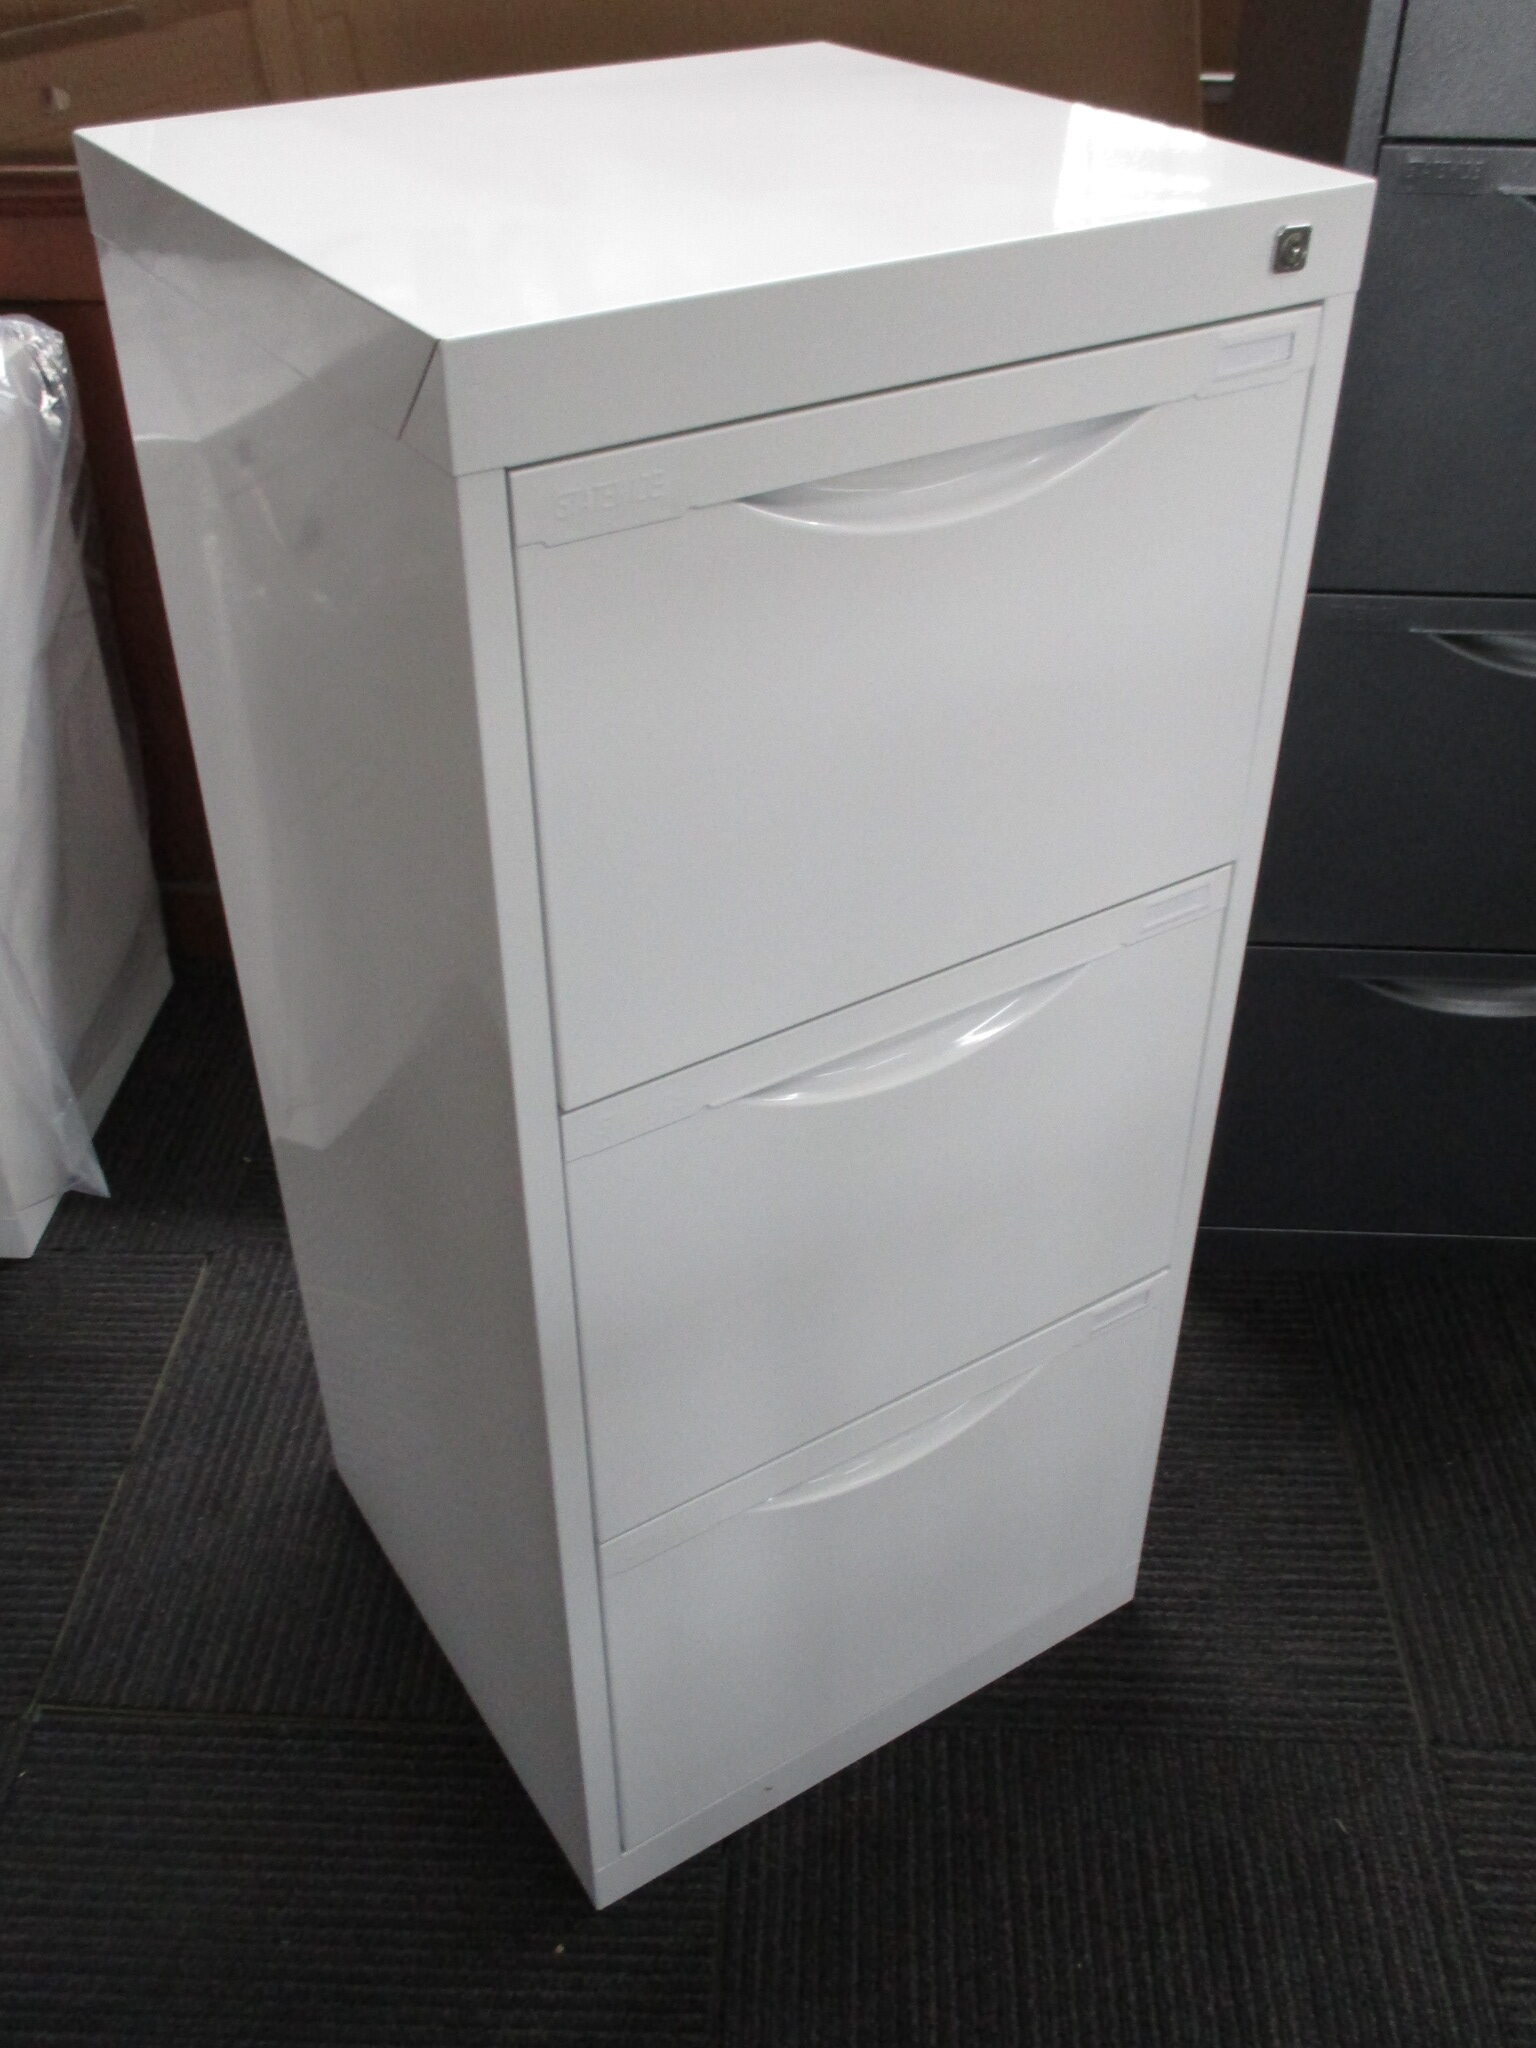 New White Statewide Homefile 3 Drawer Filing Cabinet $275